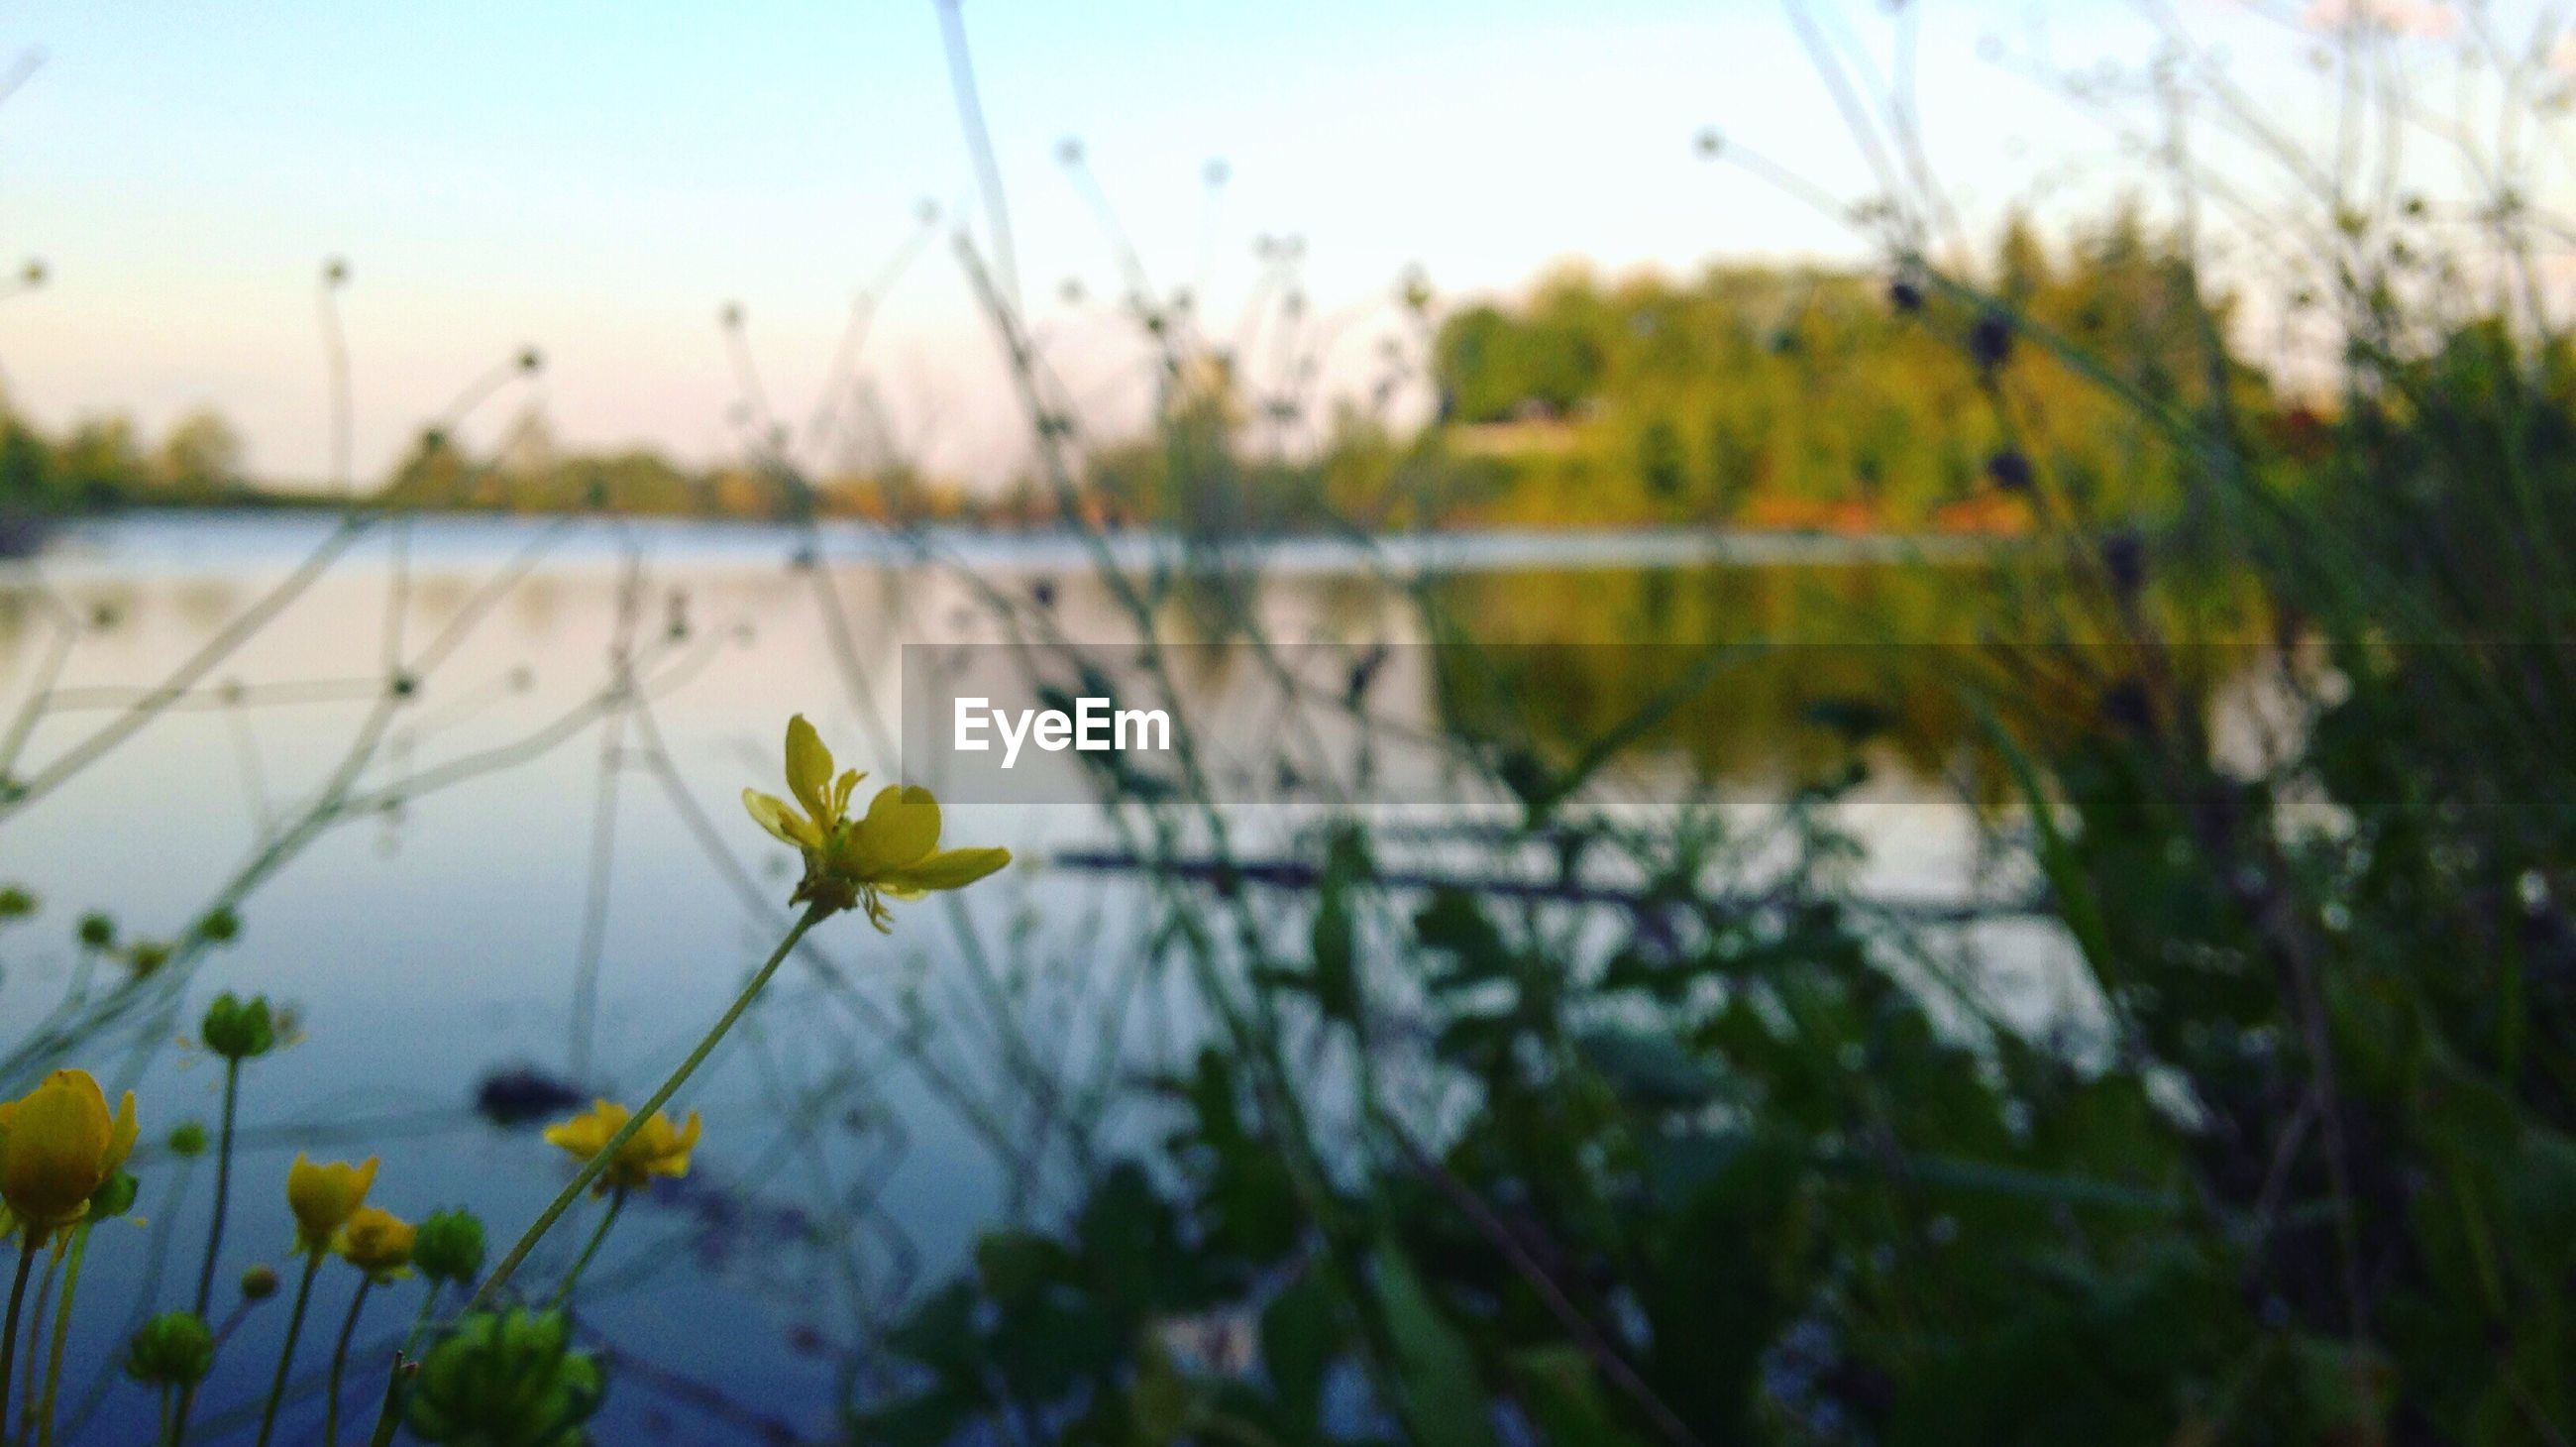 CLOSE-UP OF YELLOW FLOWERS GROWING ON LAKE